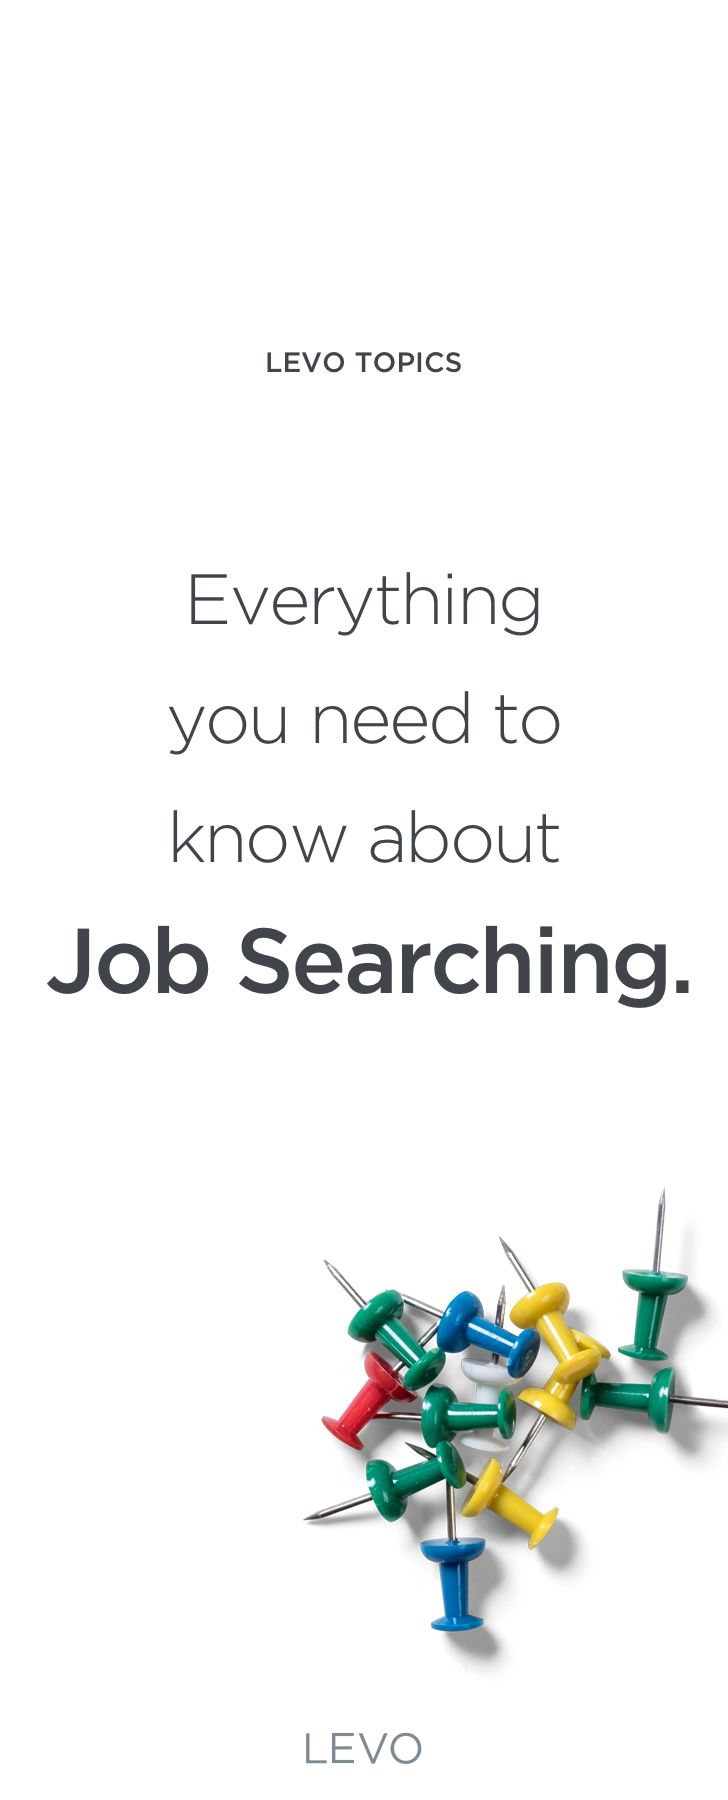 All You Need: Job Searching.